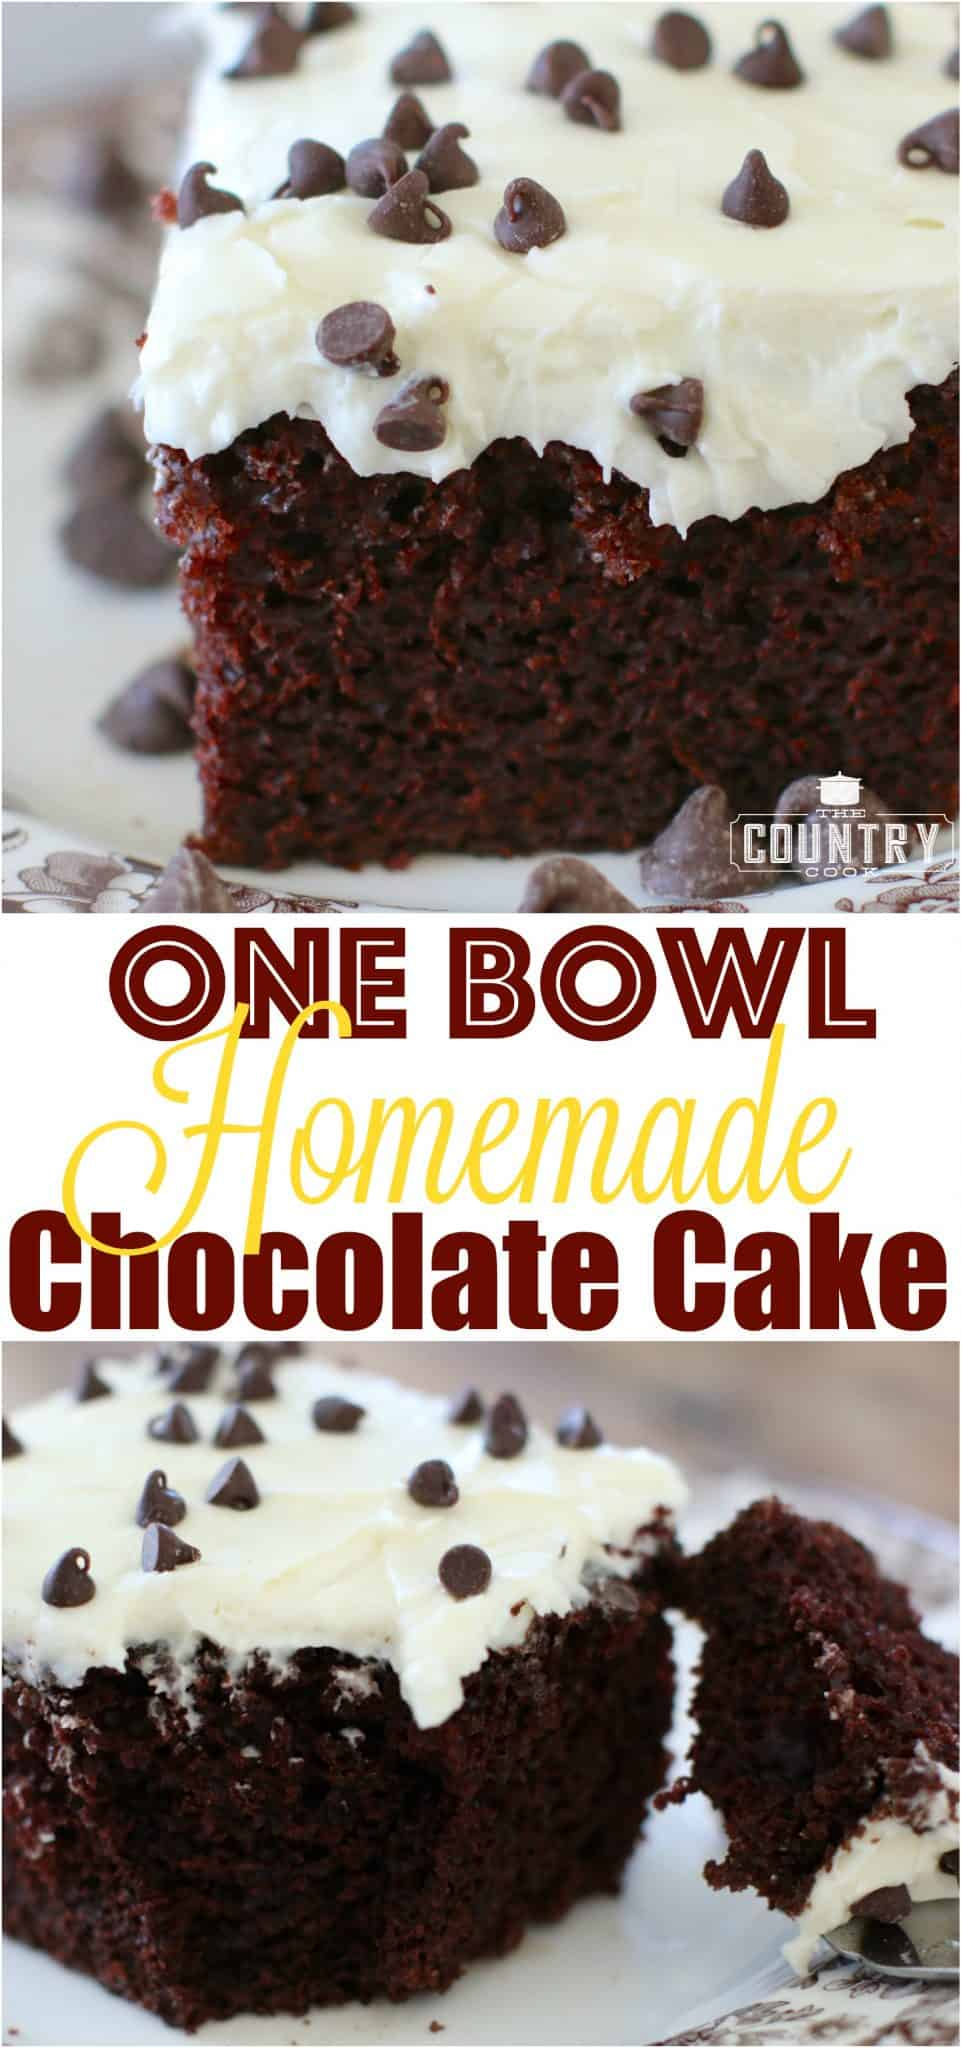 One Bowl Homemade Chocolate Cake recipe from The Country Cook ...